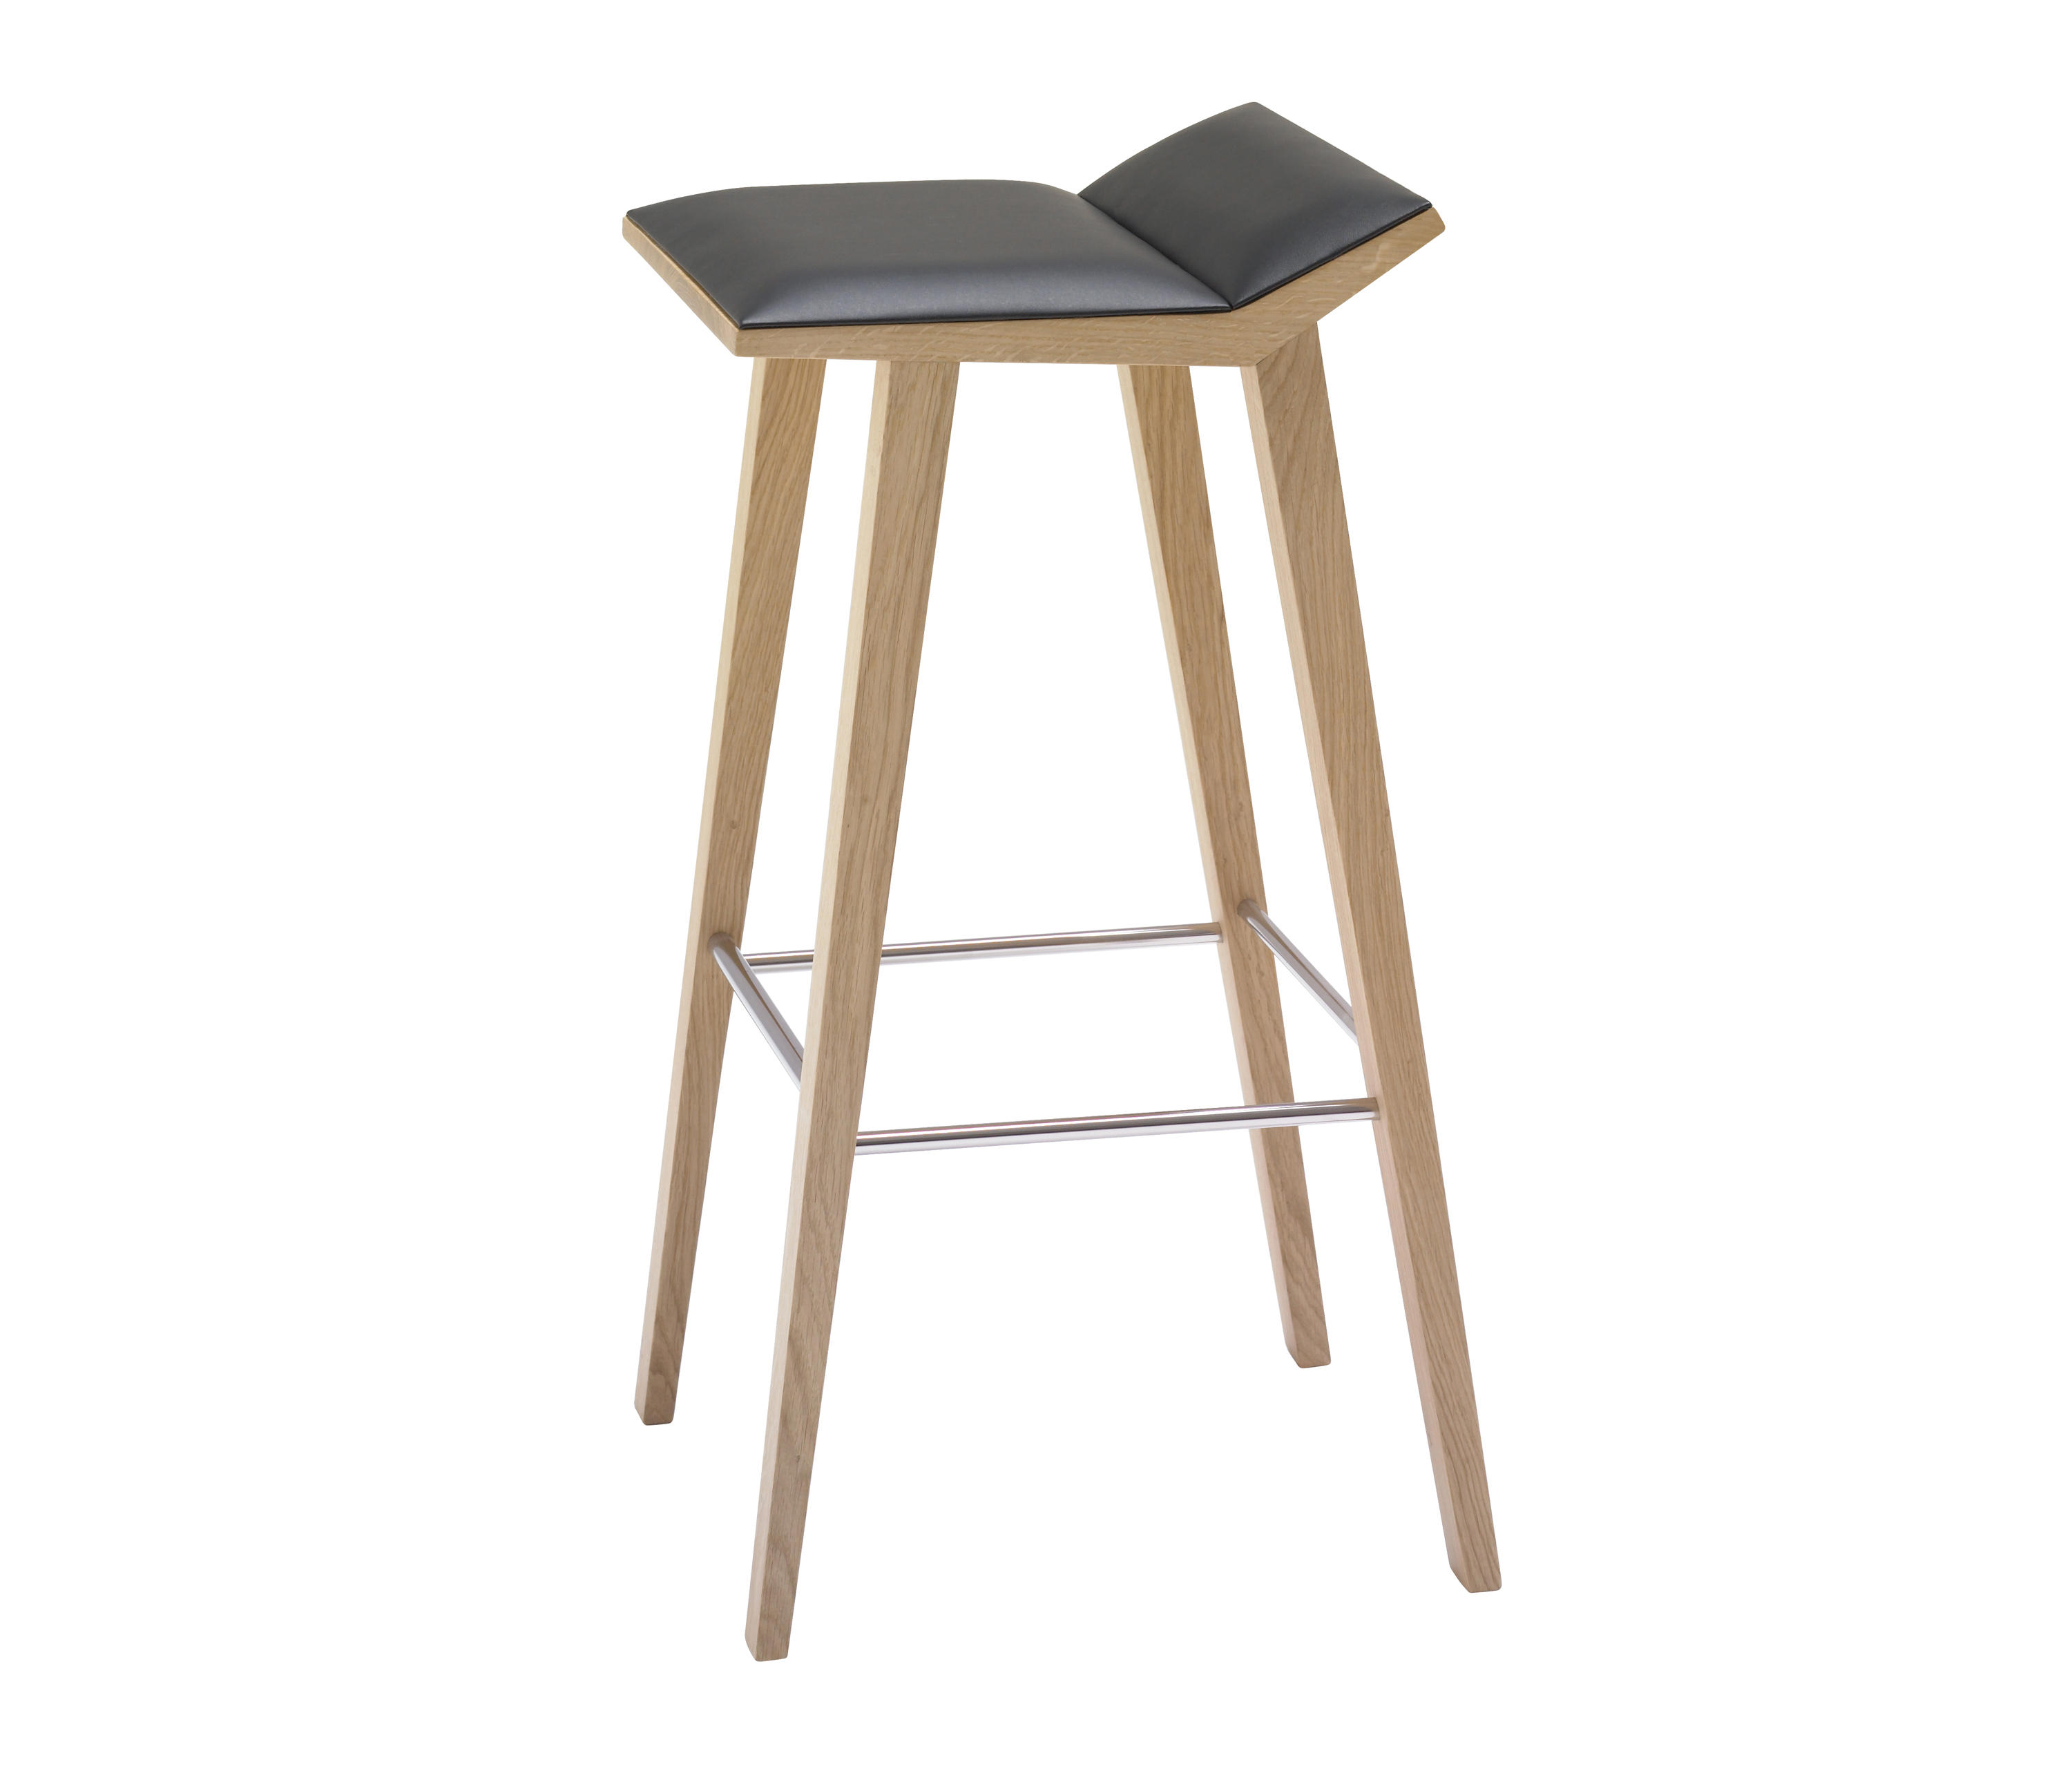 Groovy Moody Bq 1261 Bar Stools From Andreu World Architonic Evergreenethics Interior Chair Design Evergreenethicsorg